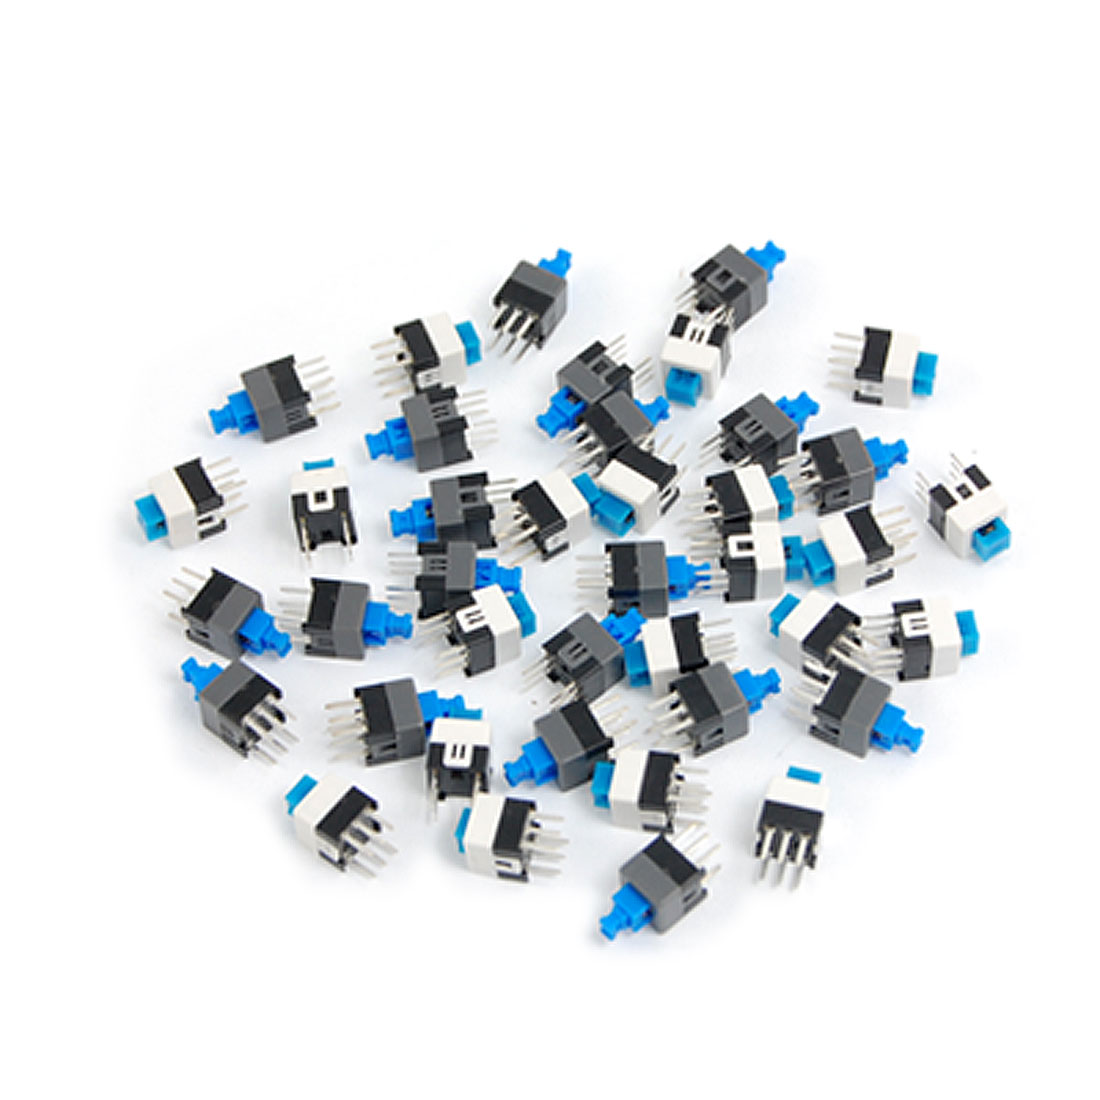 Uxcell 5 Pcs Ac 125v 1a Spst Momentary Black Push Button Switch Cool Electronics Circuits Latching A 40 7 X 7mm Pcb Tact Tactile Self Lock 6 Pin